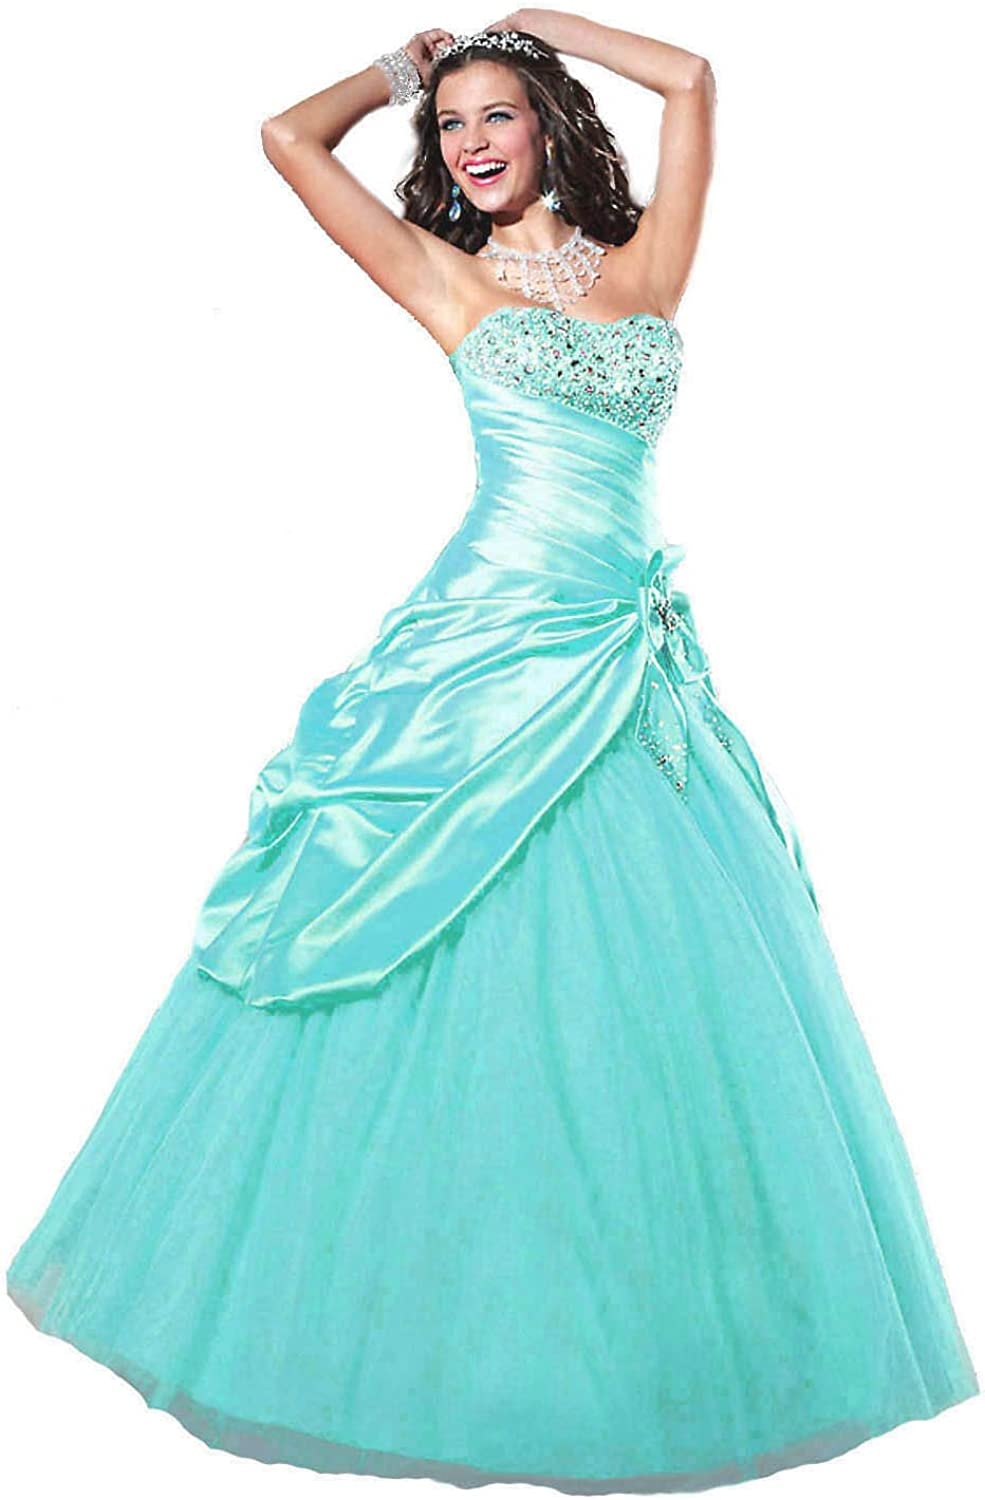 Faironly Aqua Strapless Prom Gown Dress